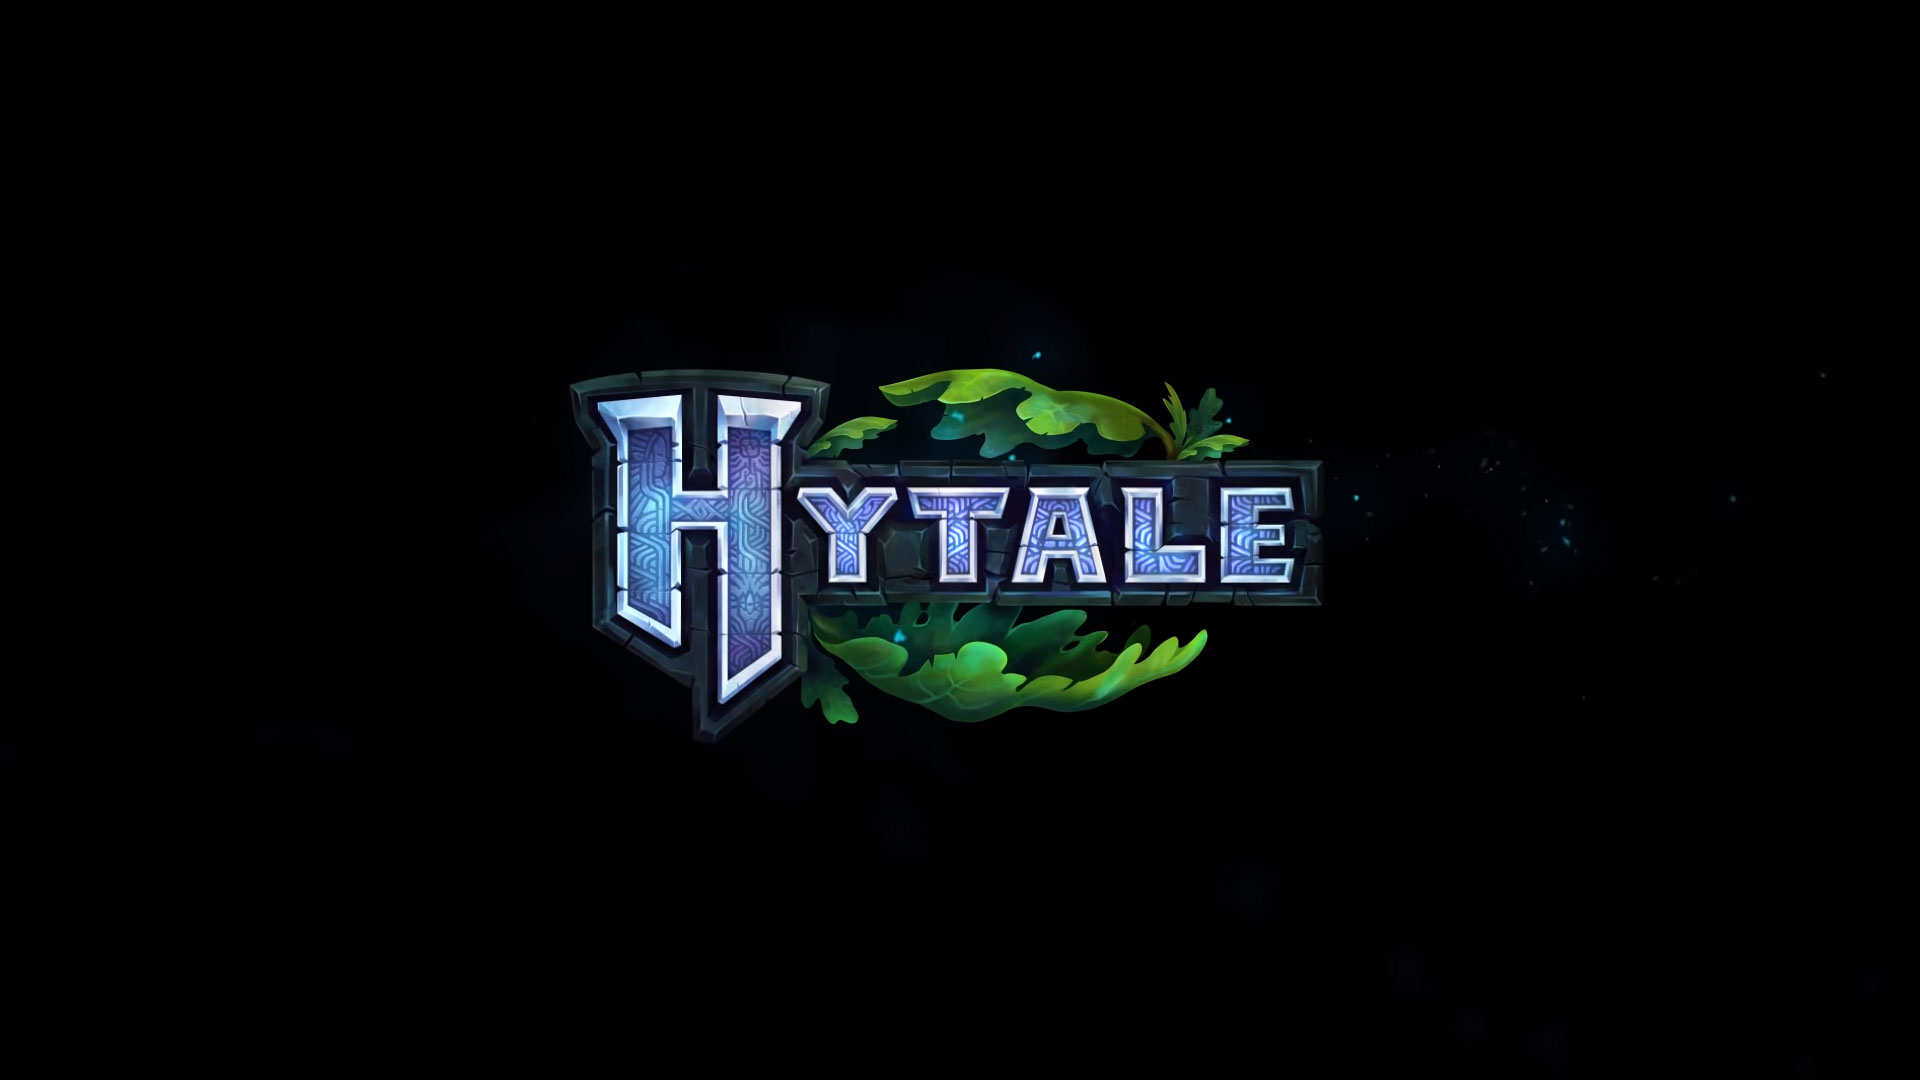 Hytale Wallpapers Hd Desktop Iphone Mobile Pro Game Guides